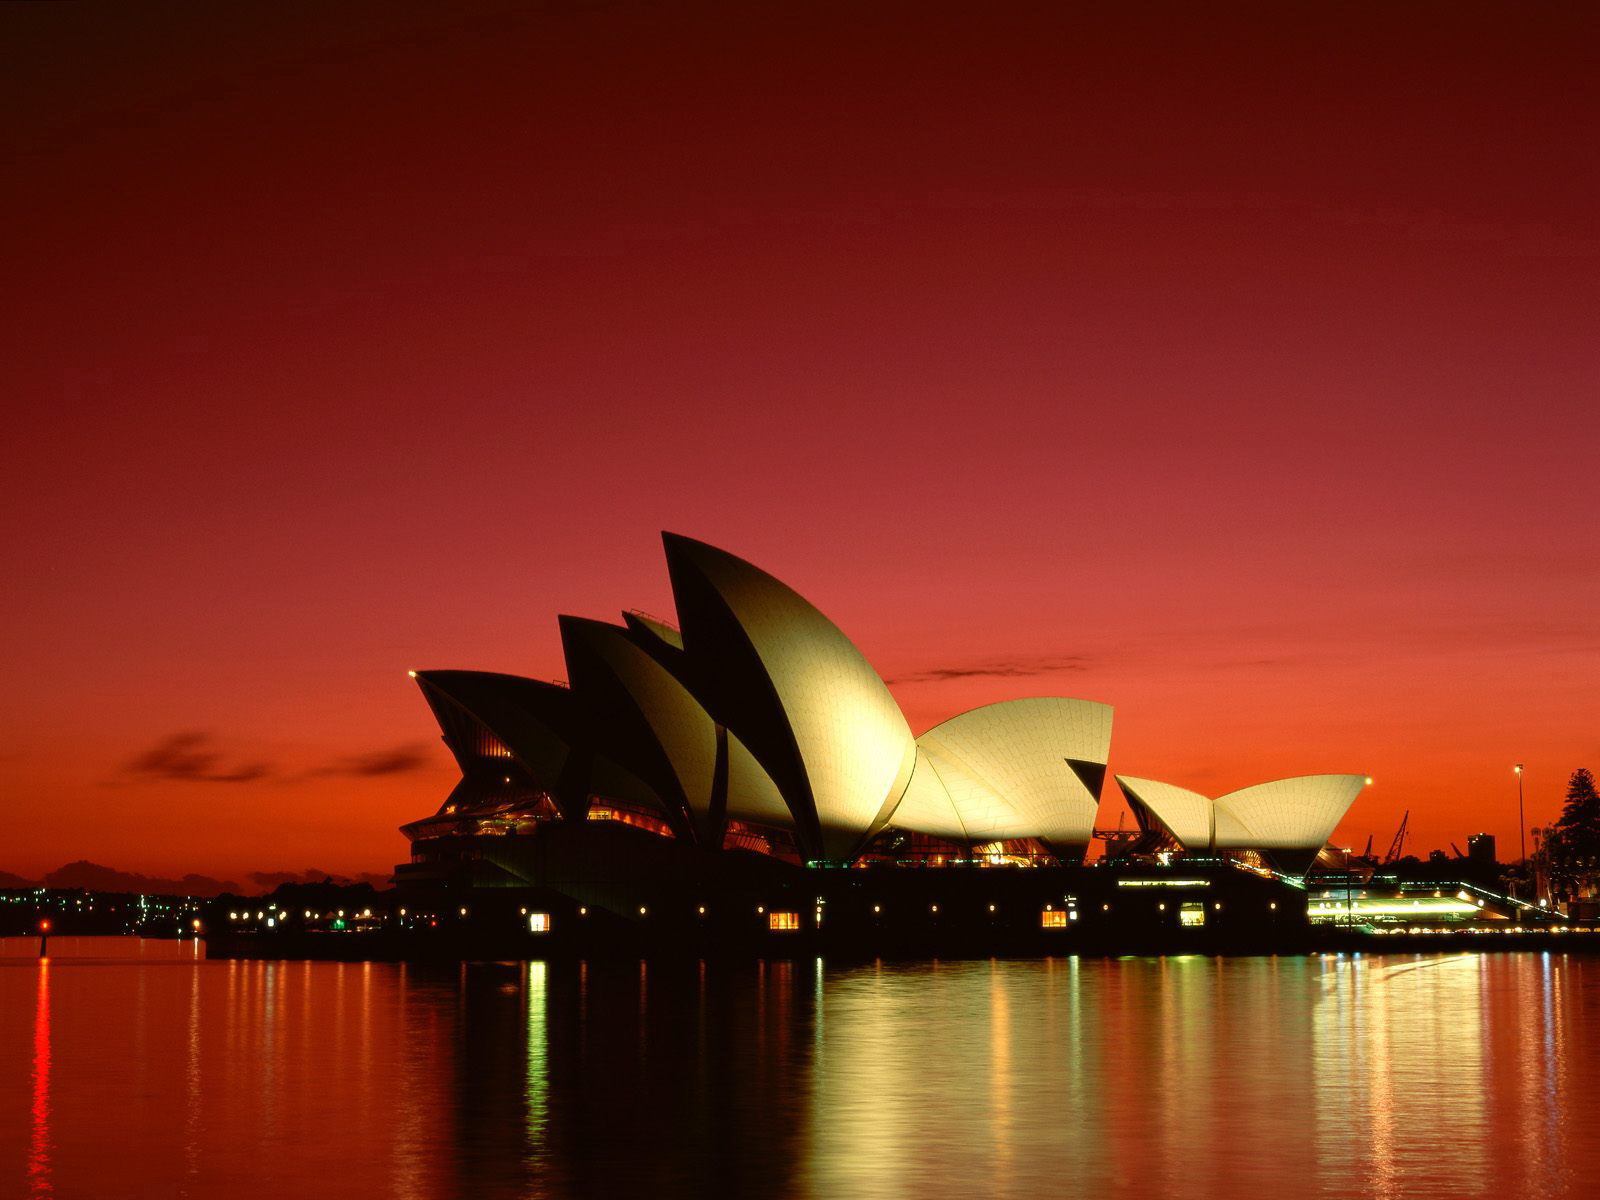 Sydney - Australia Wallpaper (32220107) - Fanpop